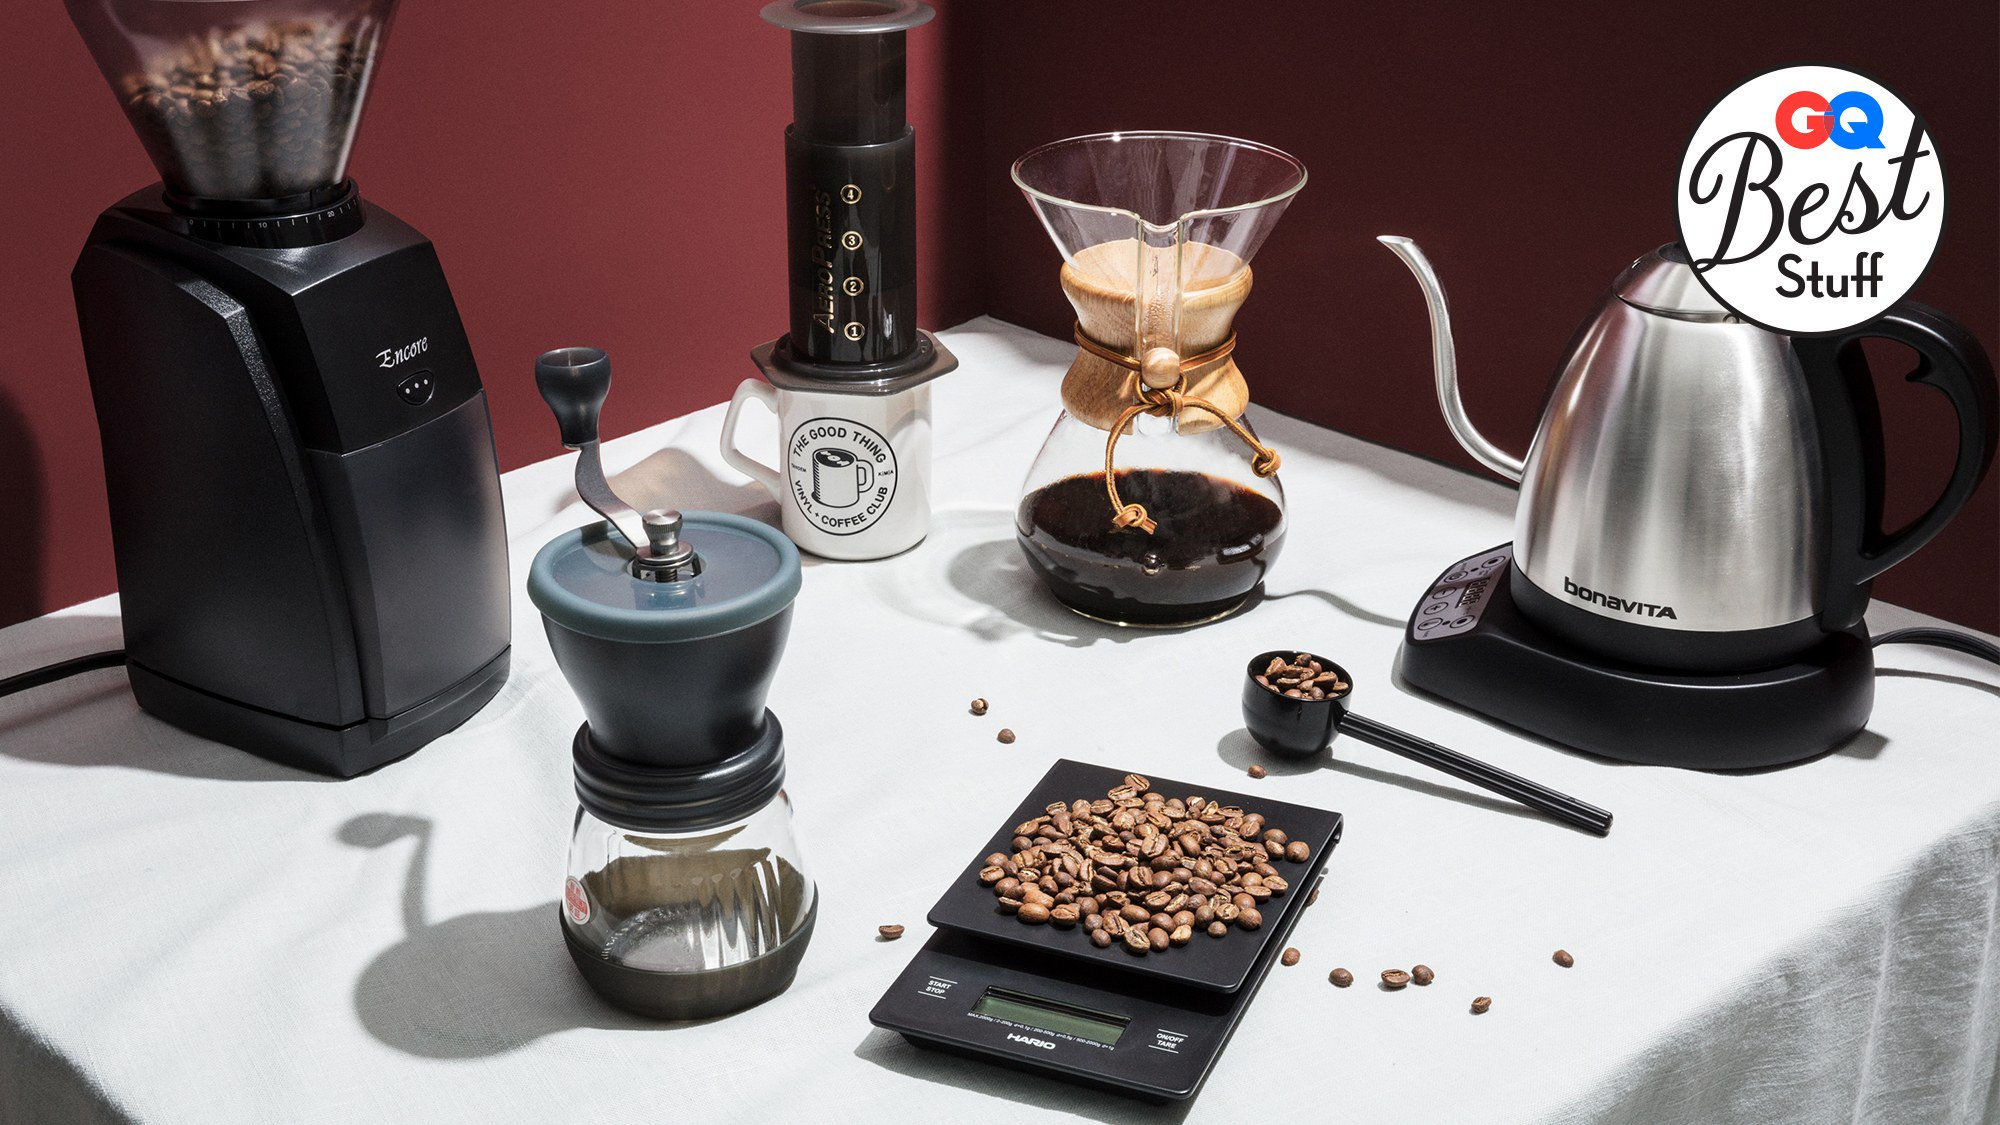 Everything you need to become your own barista https://t.co/ISdVfzBTm6 https://t.co/pAsApGQUfo